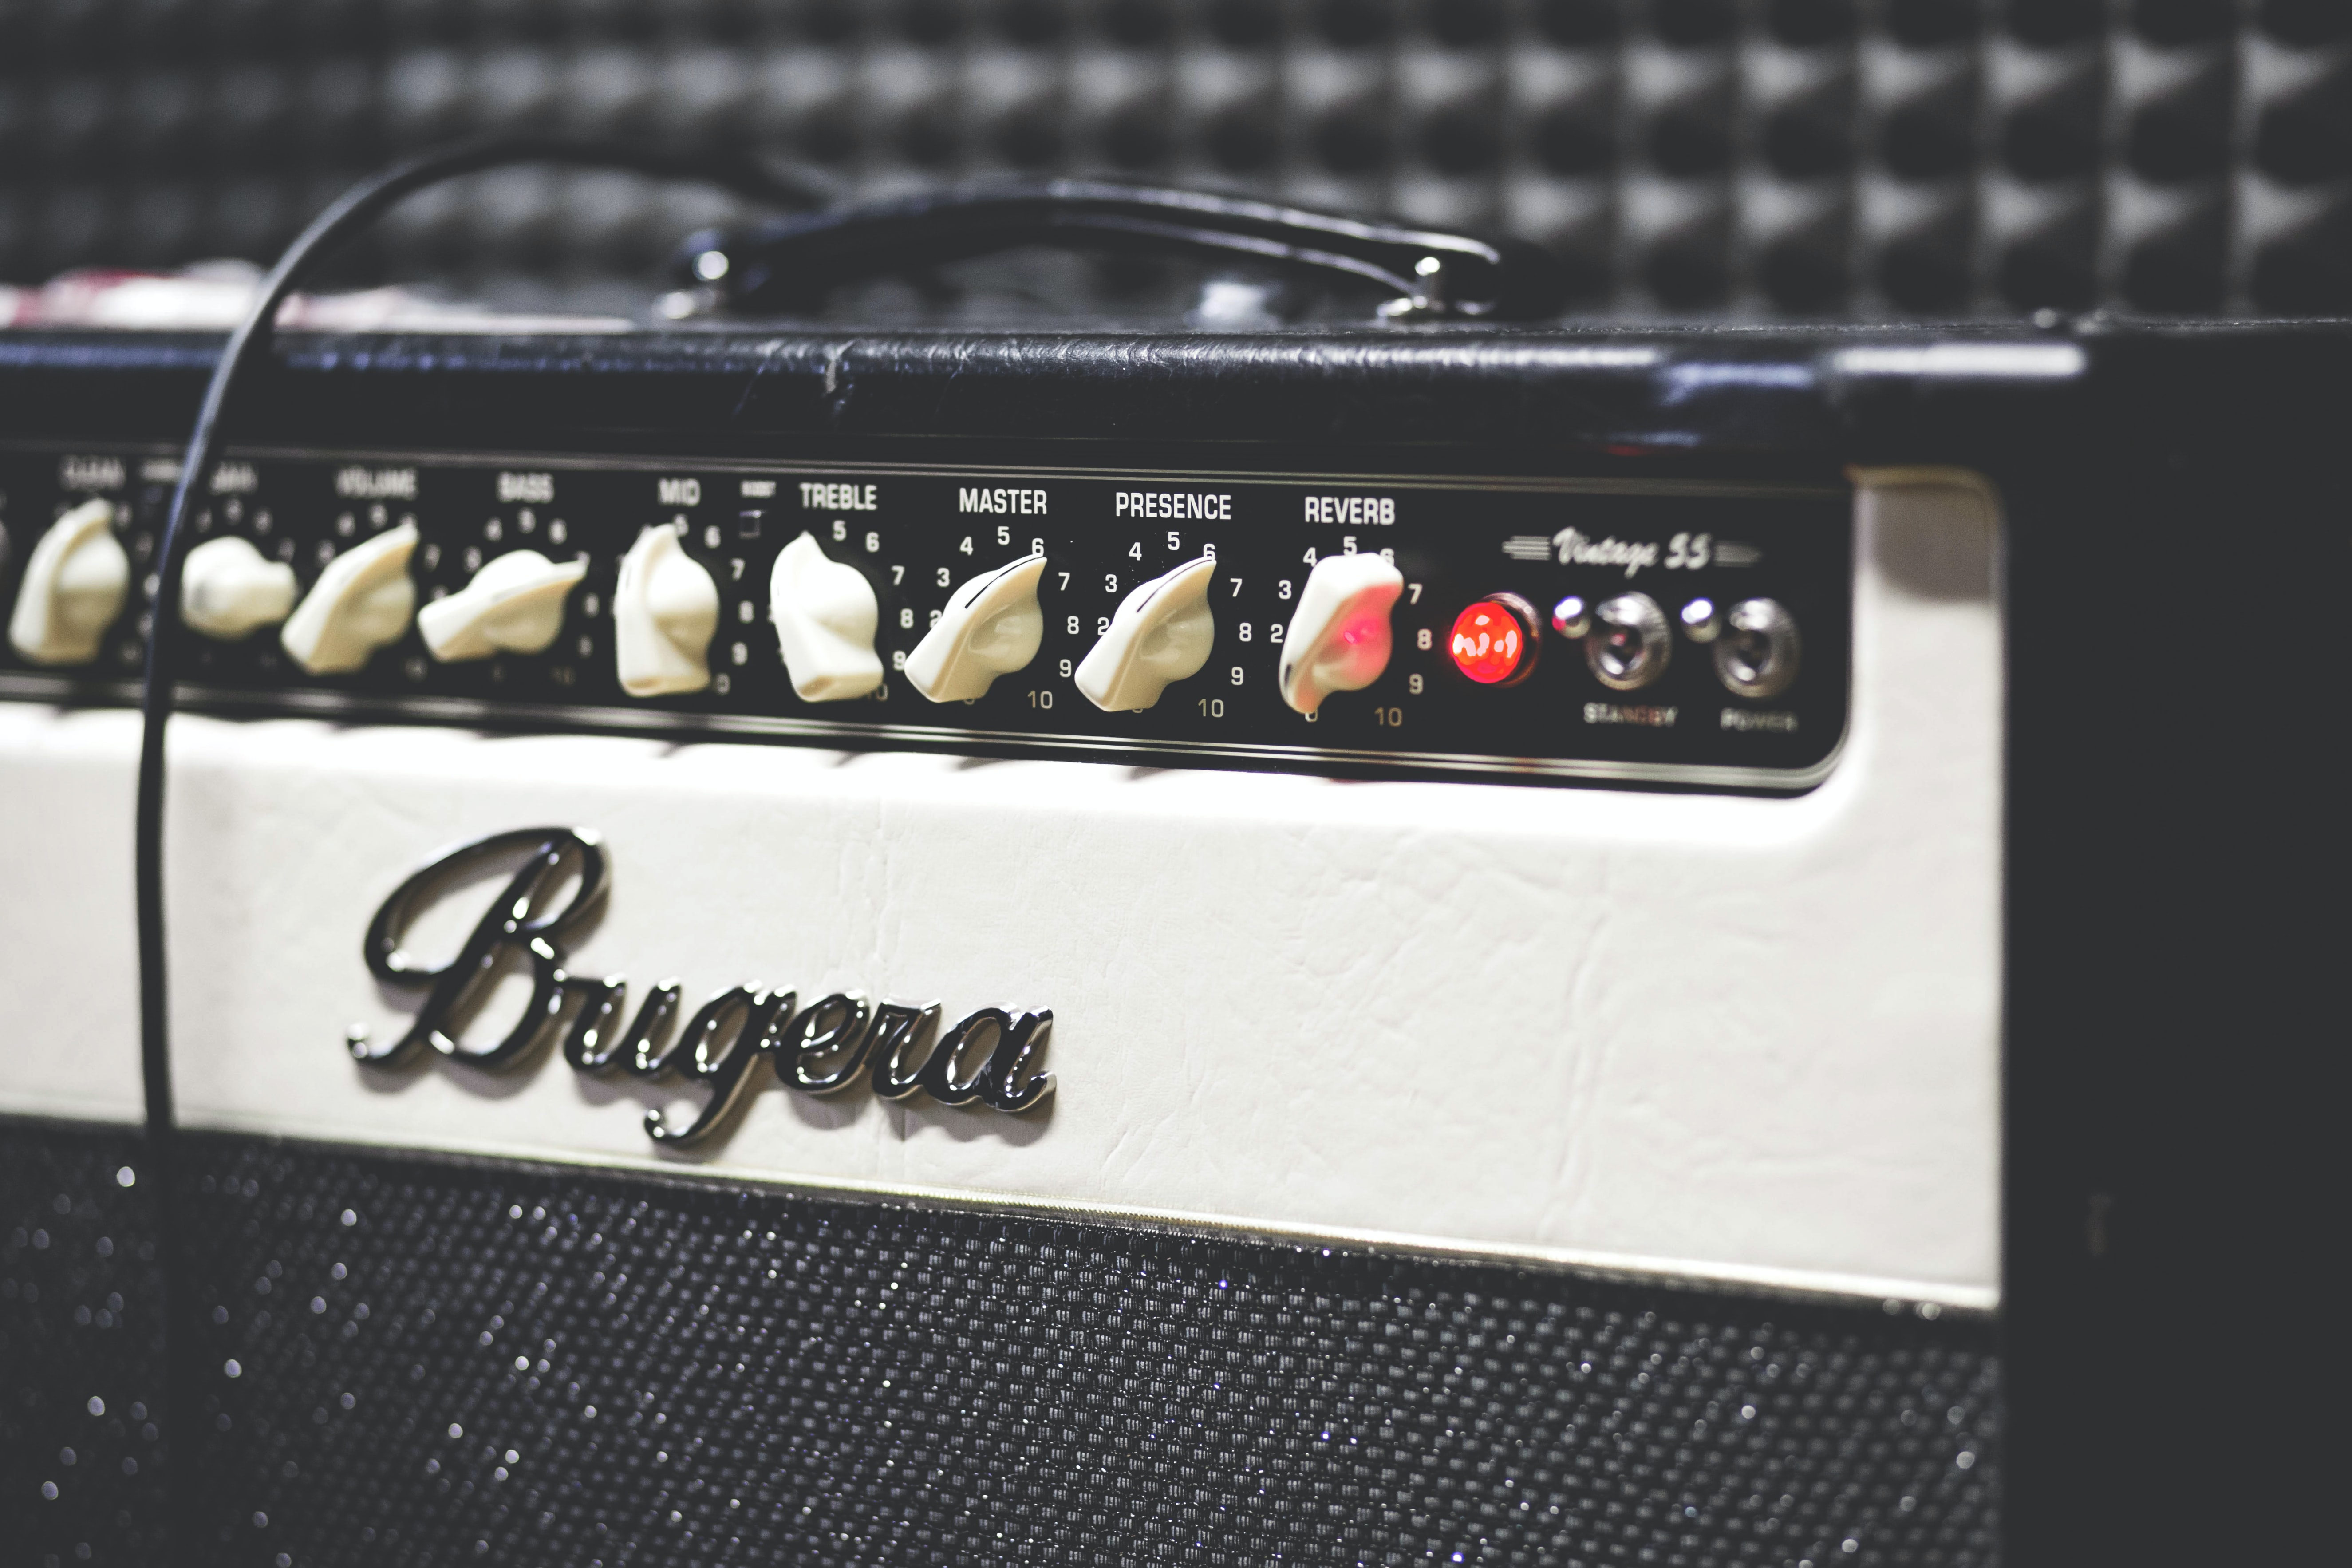 black and white Bugera guitar amplifier